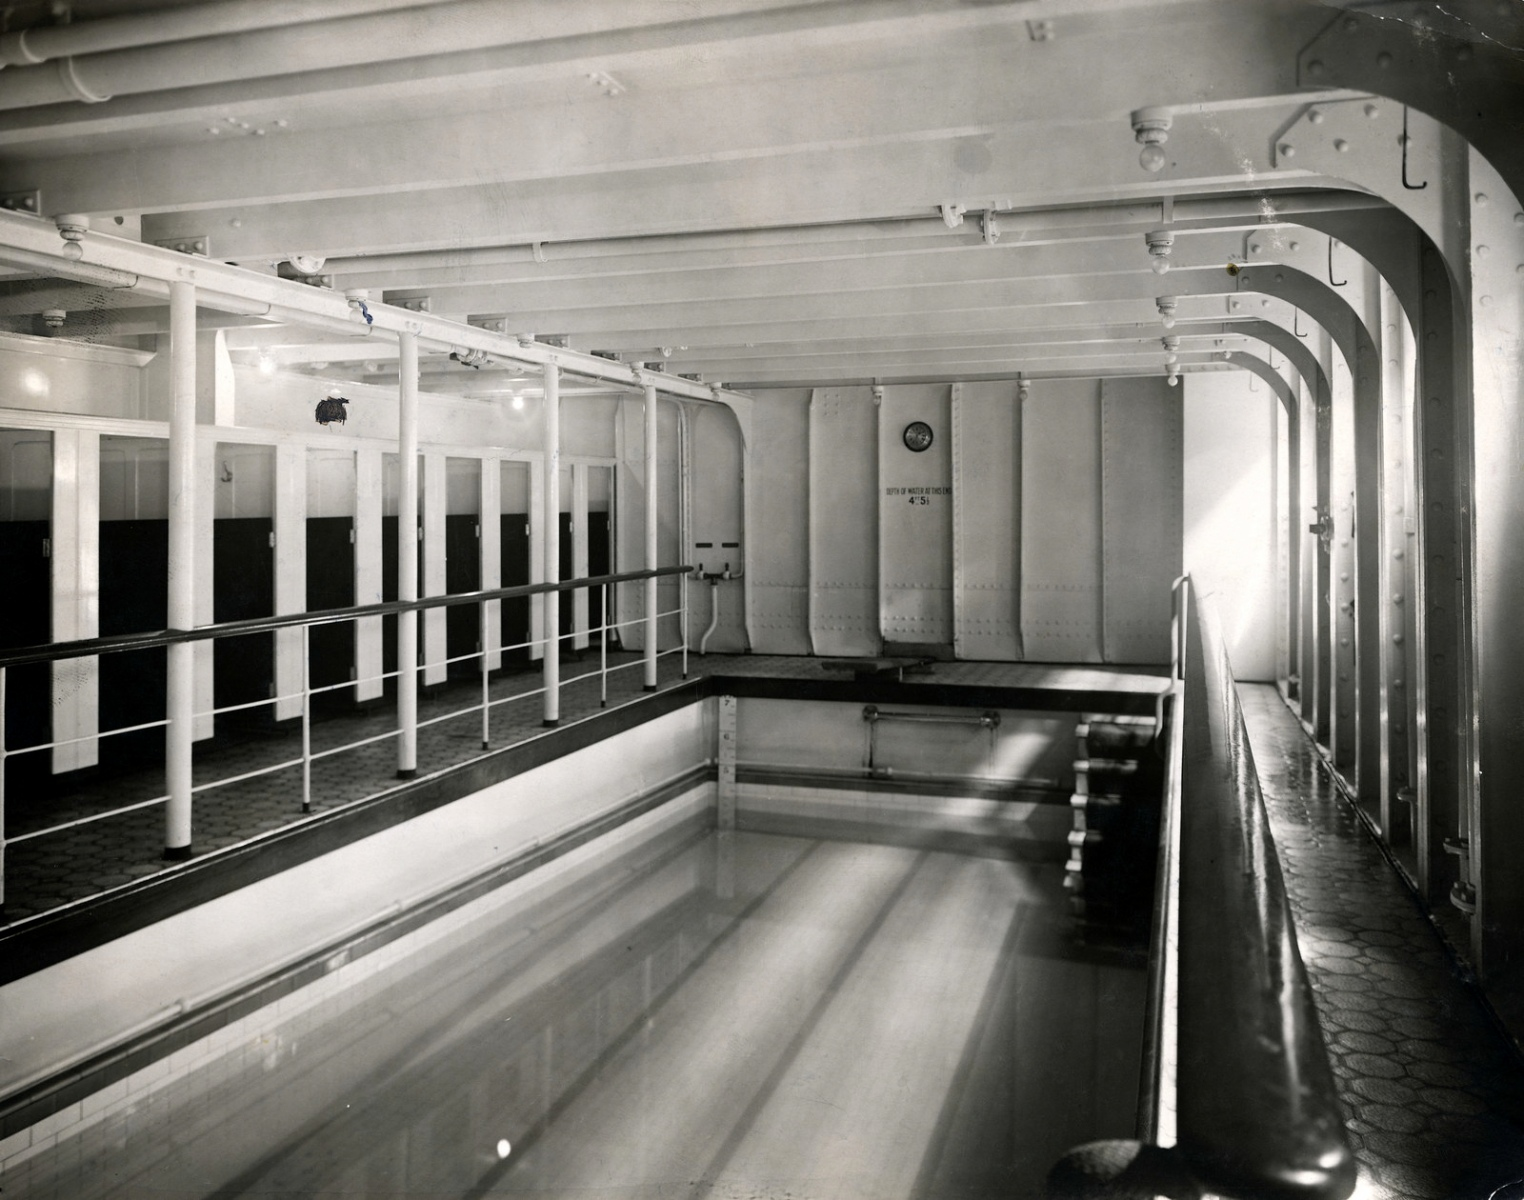 The swimming pool on the Titanic.